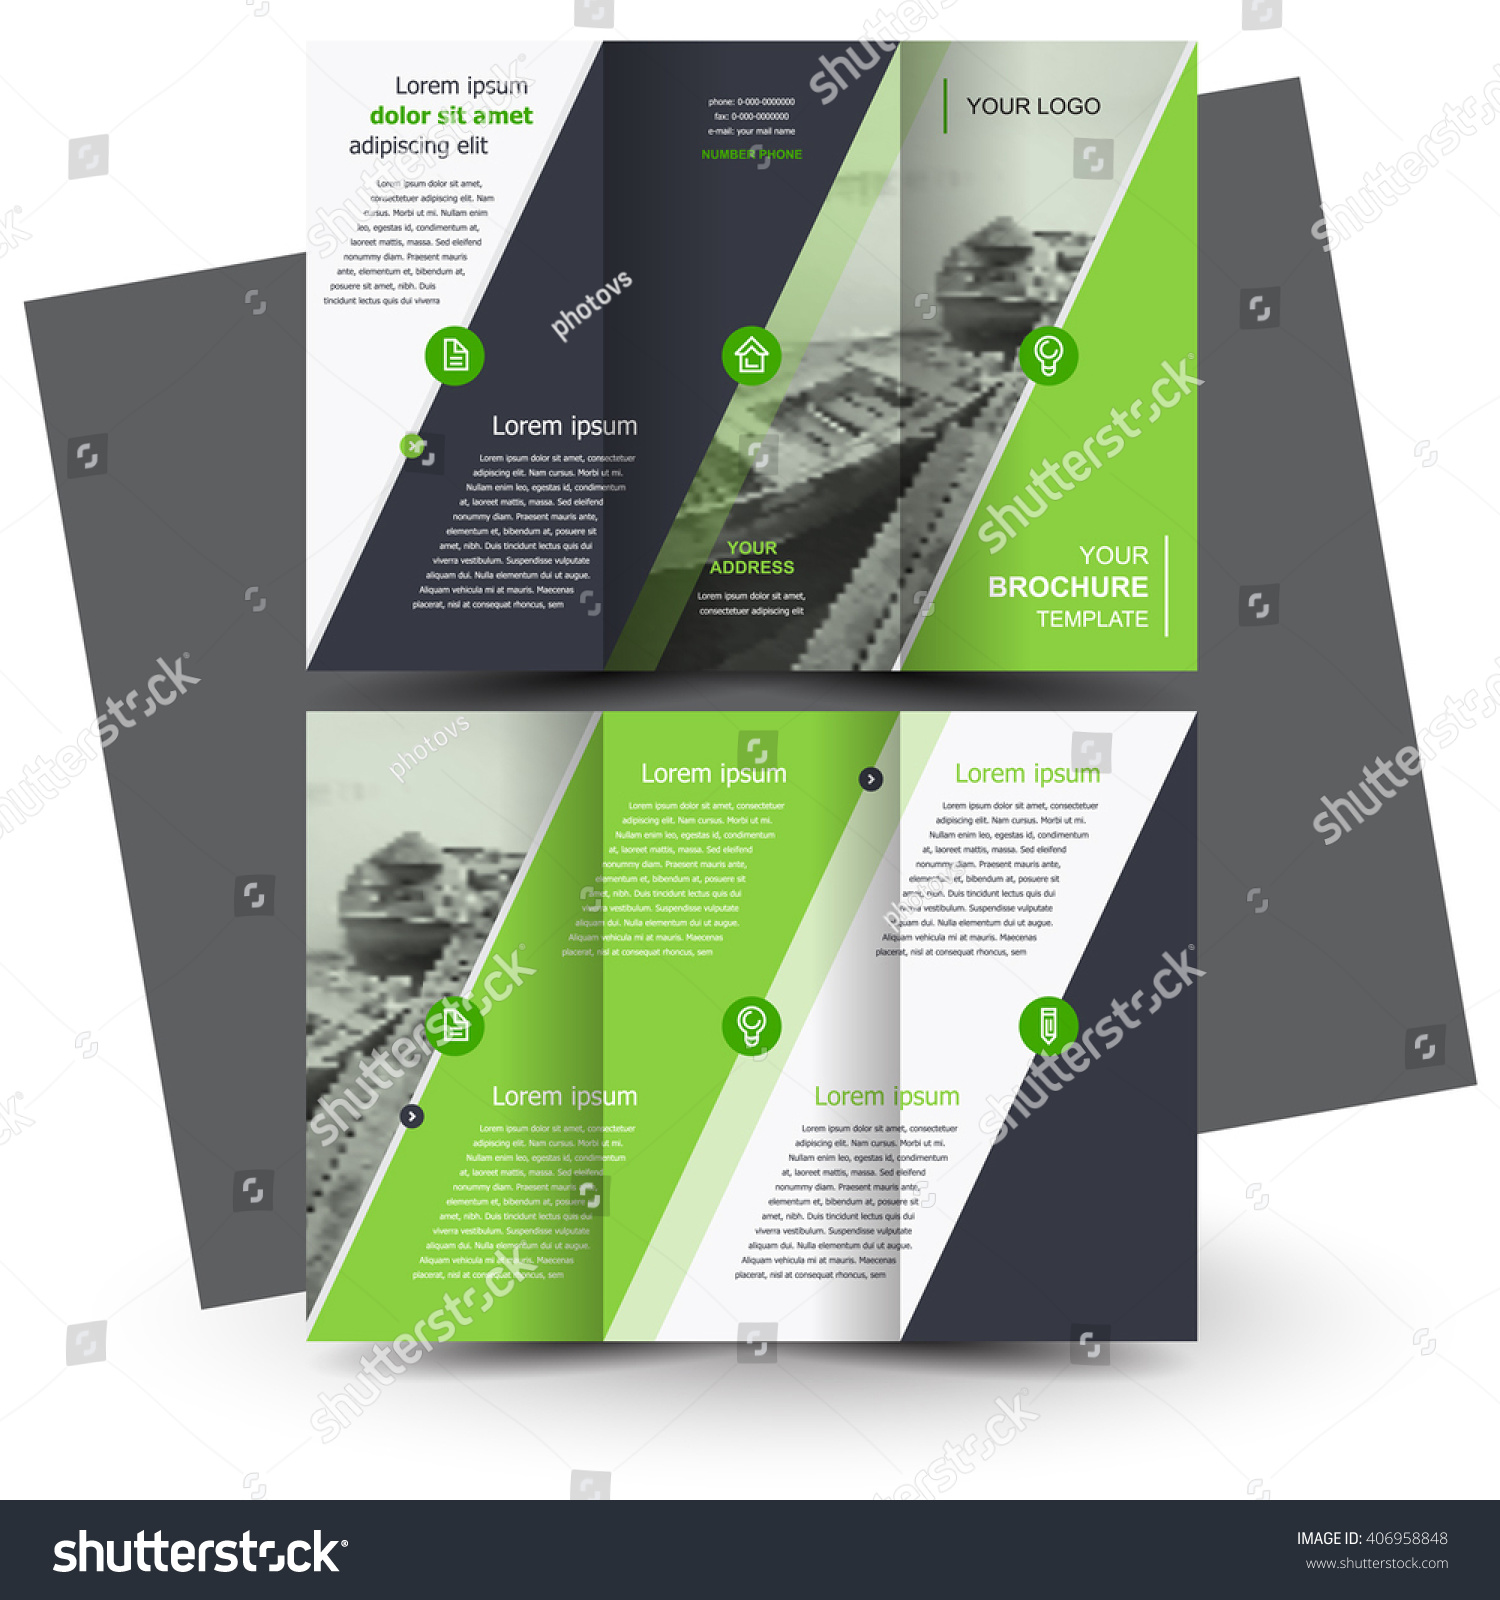 Brochure design business brochure template creative stock for Custom brochure design